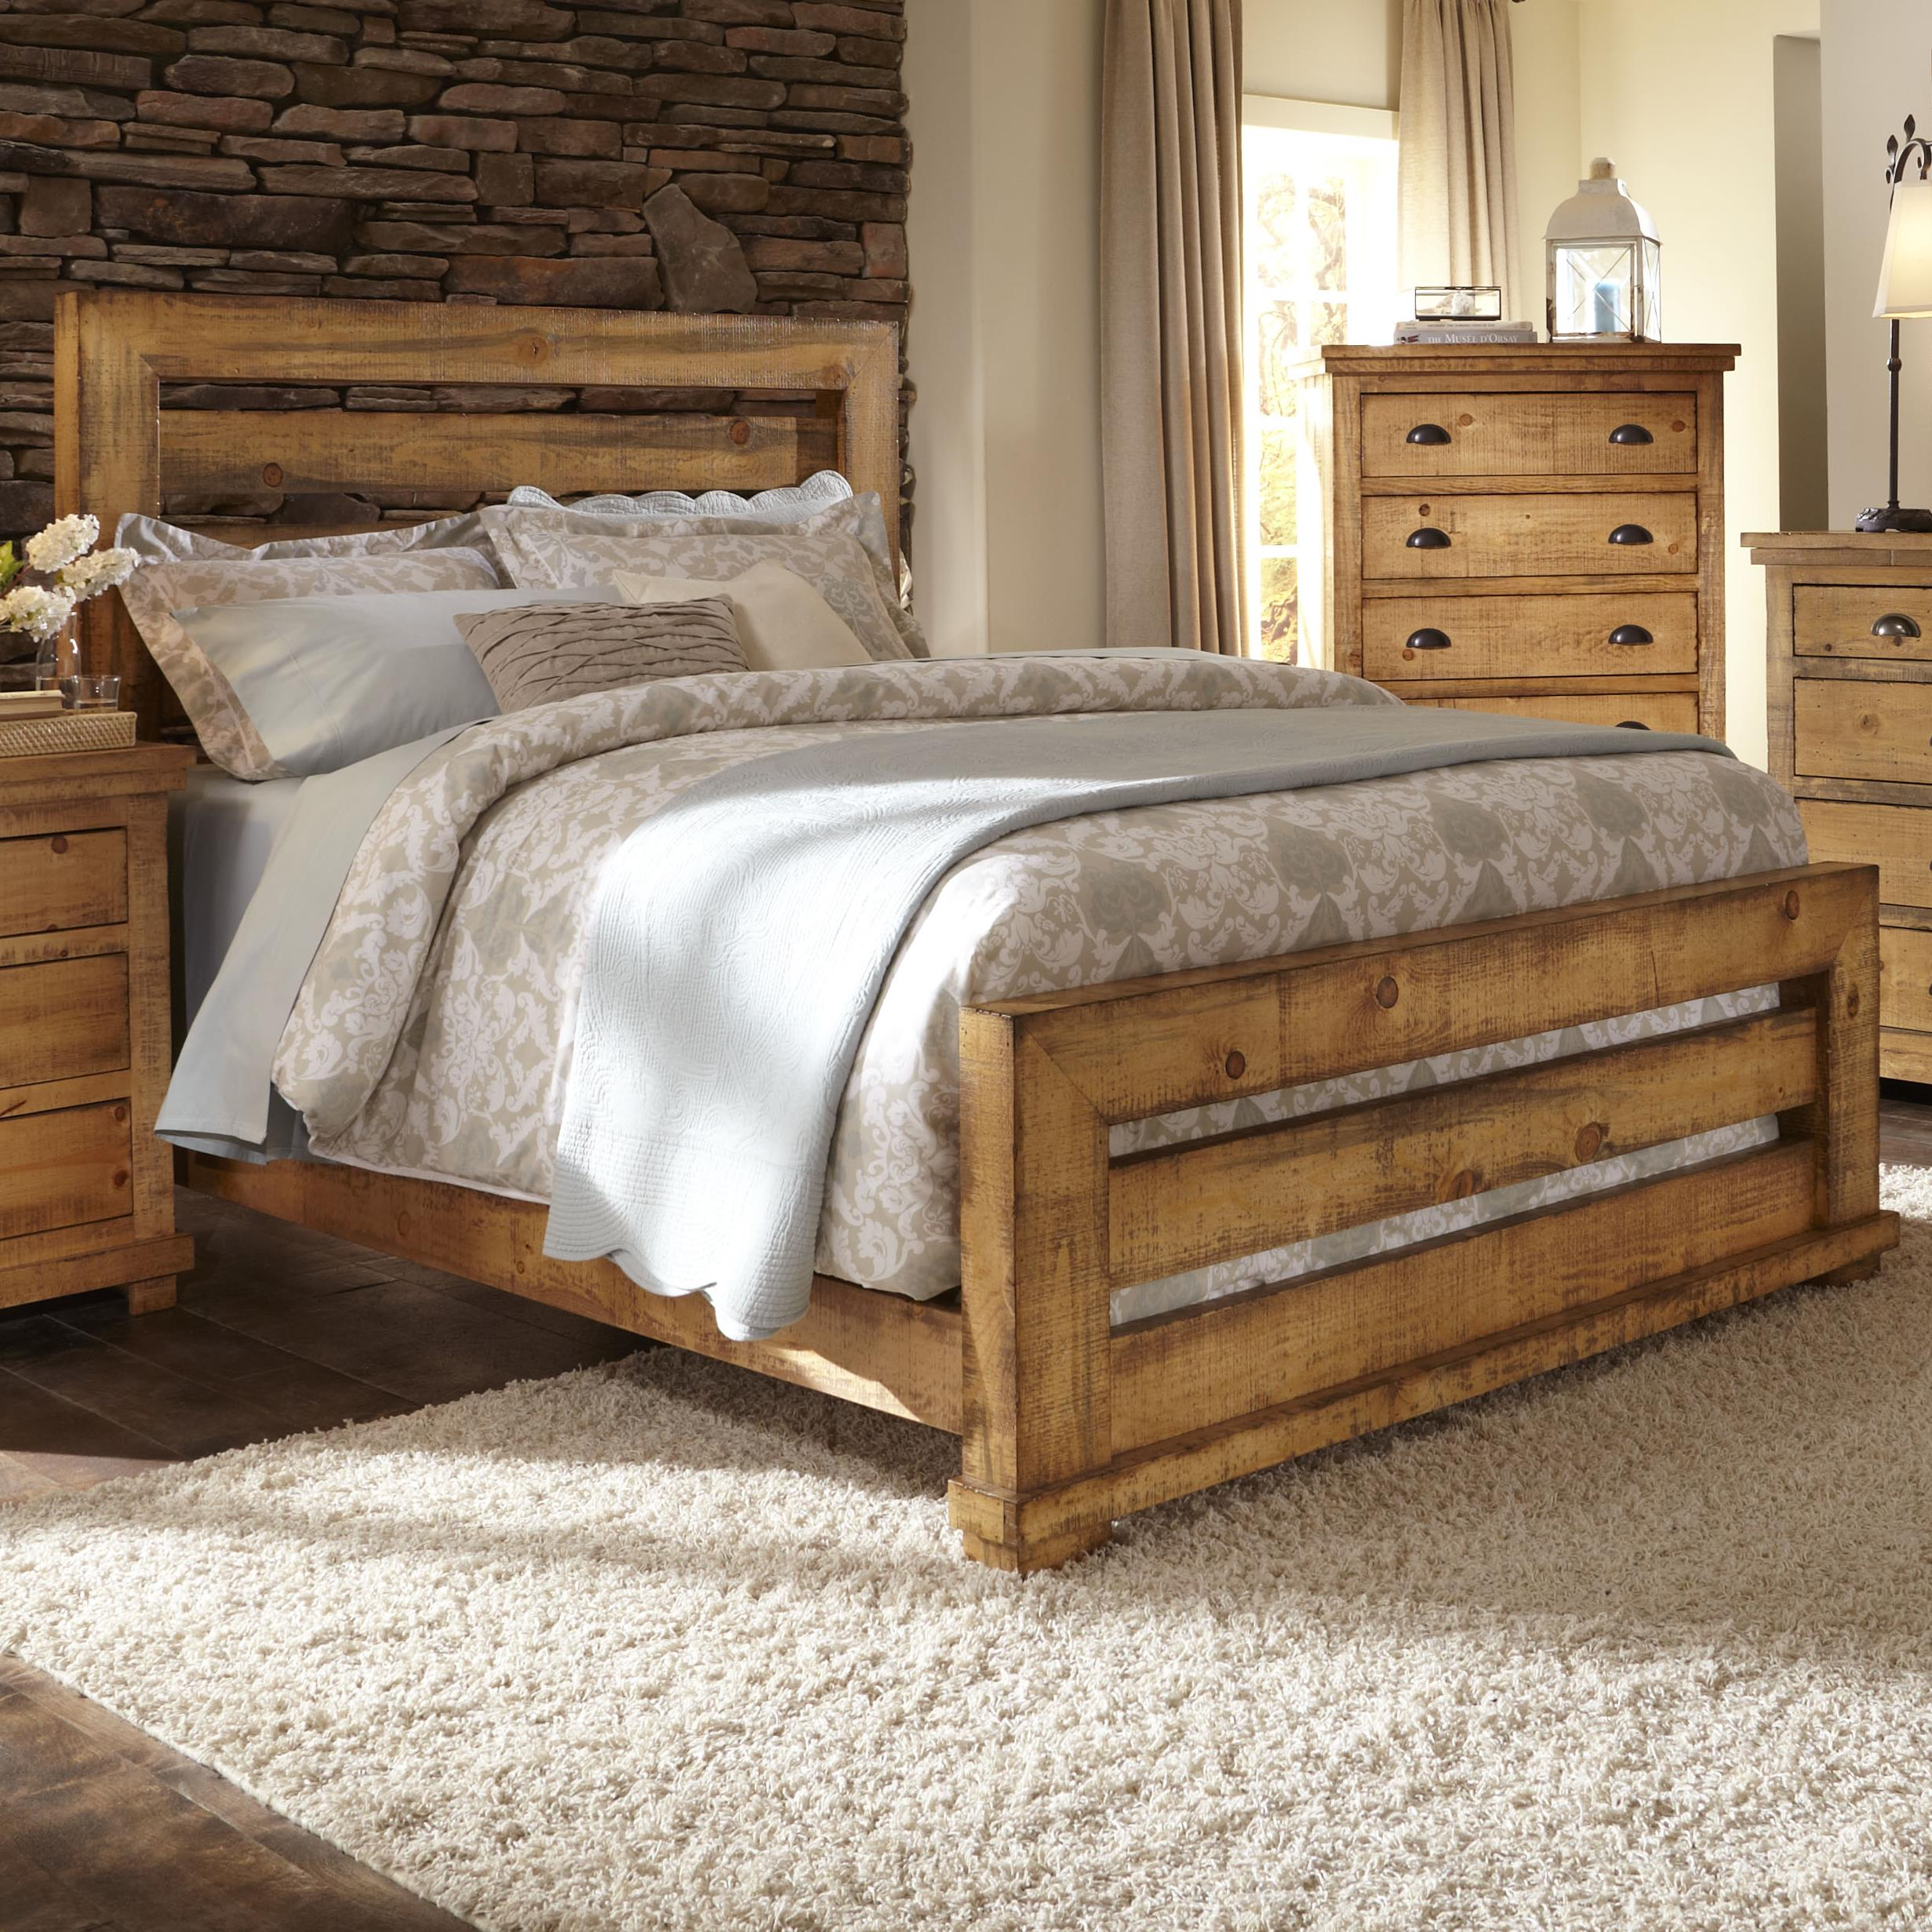 Progressive Furniture Willow Queen Slat Bed with Distressed Pine